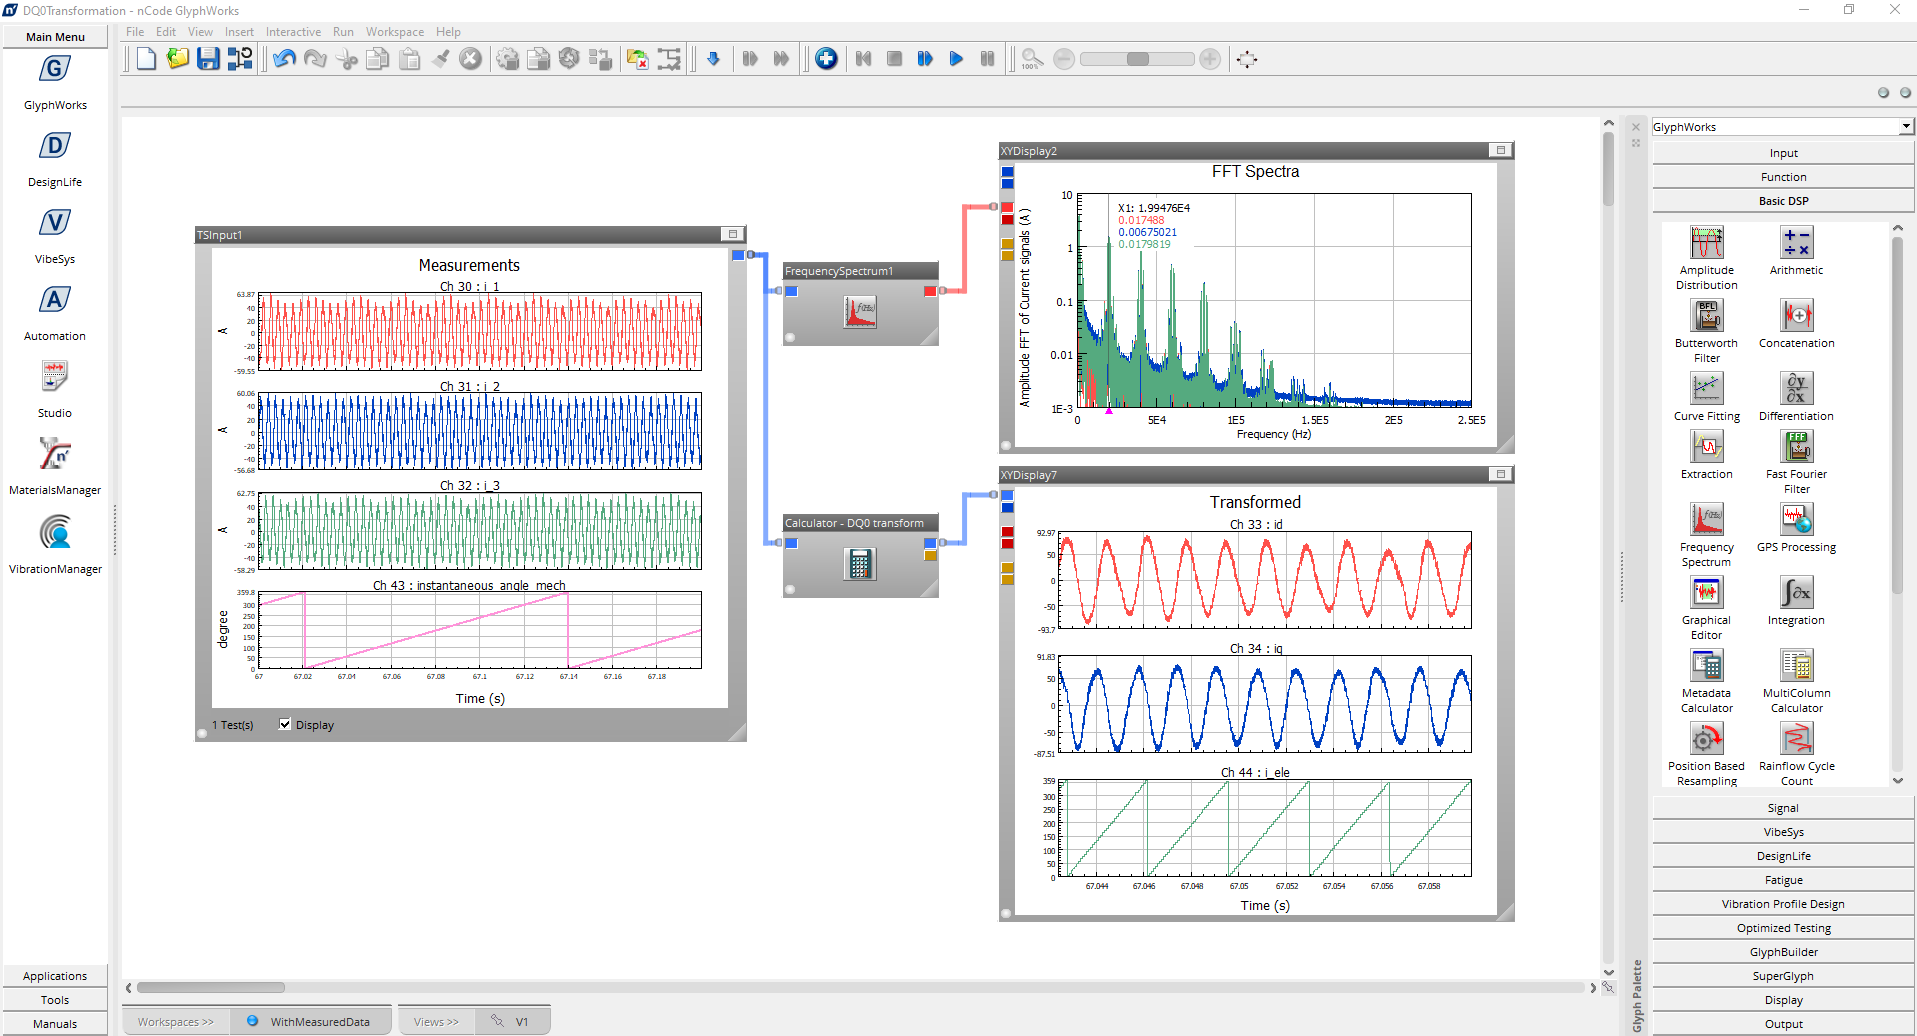 Power measurement and analysis for electrification  nCode GlyphWorks